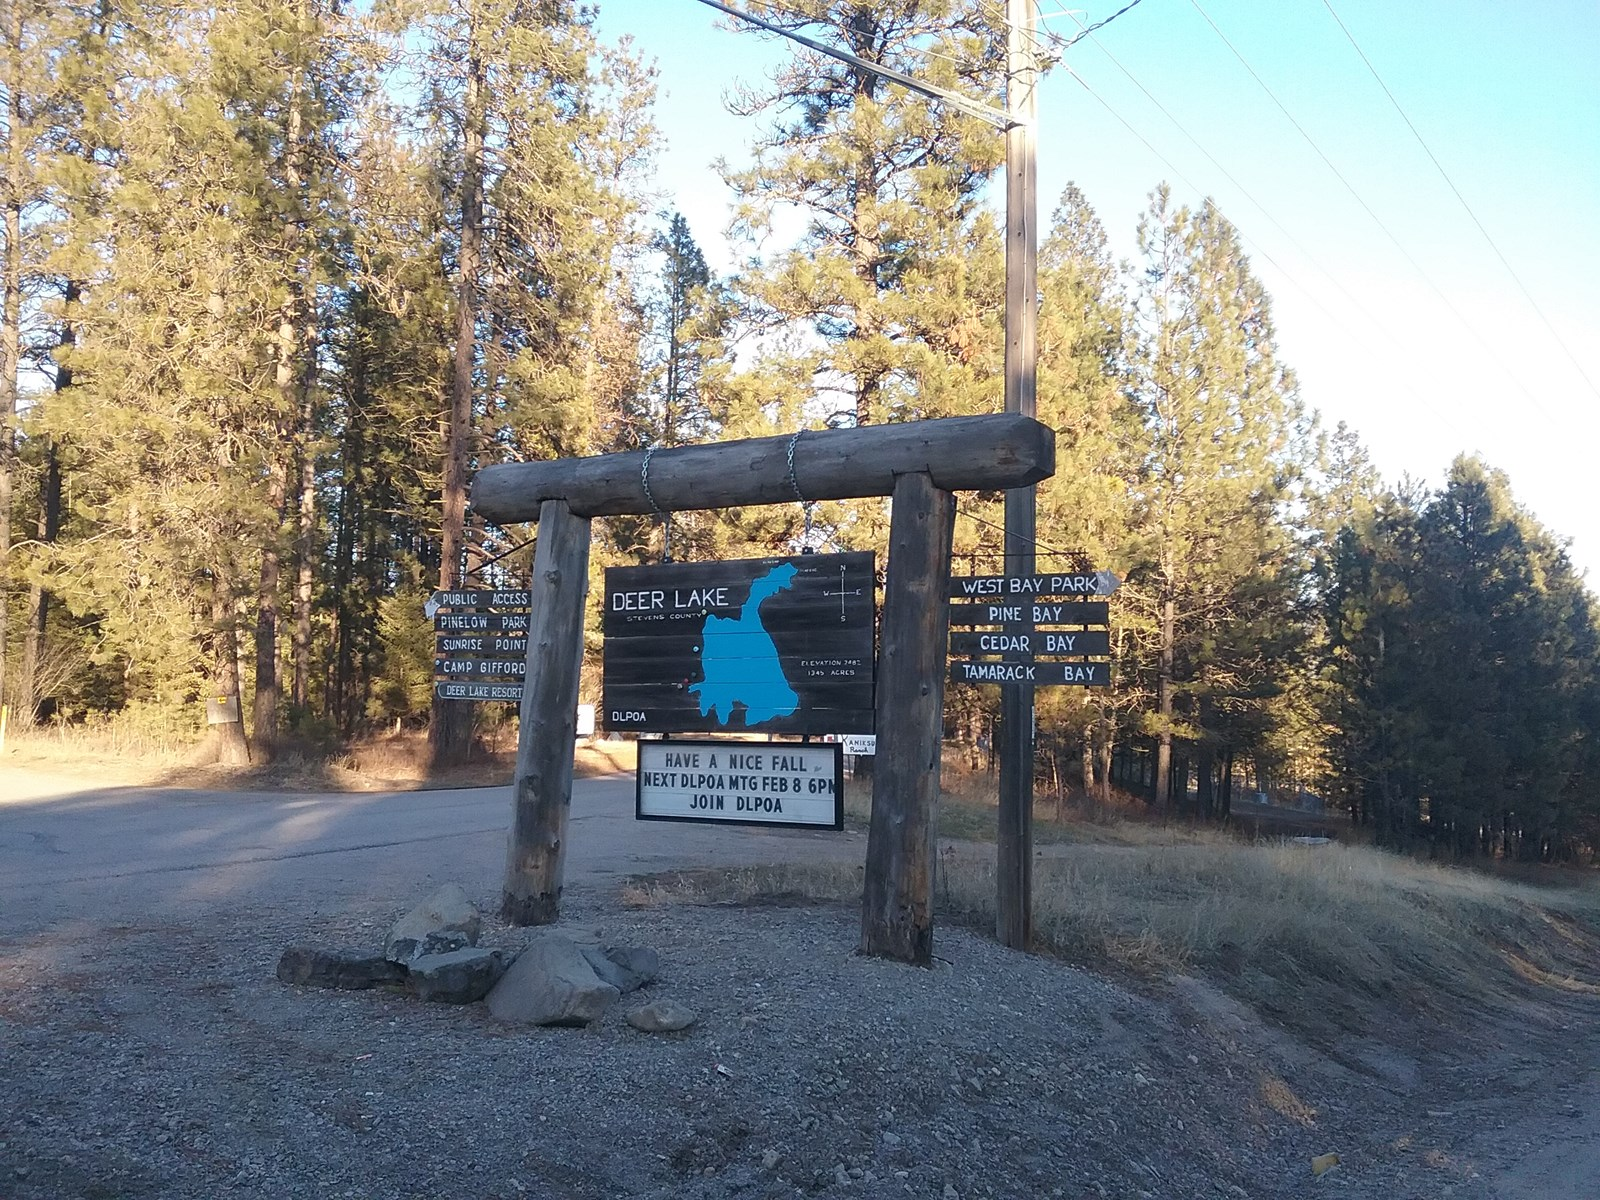 Acreage In Washington Residential Hunting And Fishing